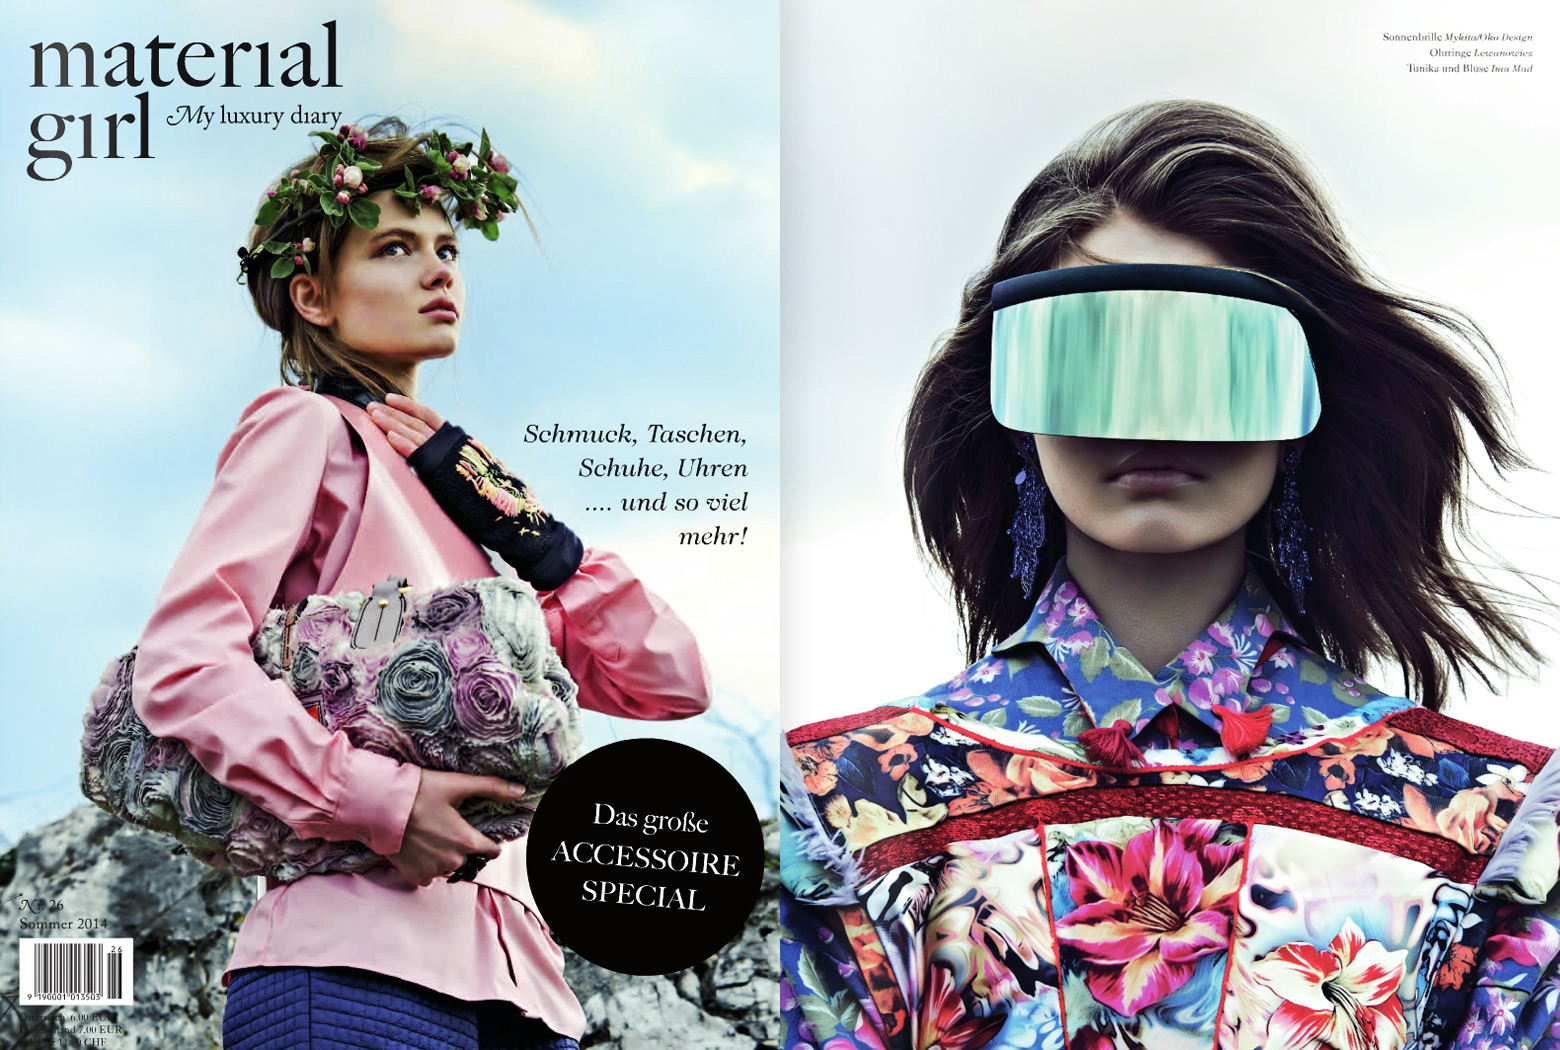 MYKITA Clipping Materialgirl Austria